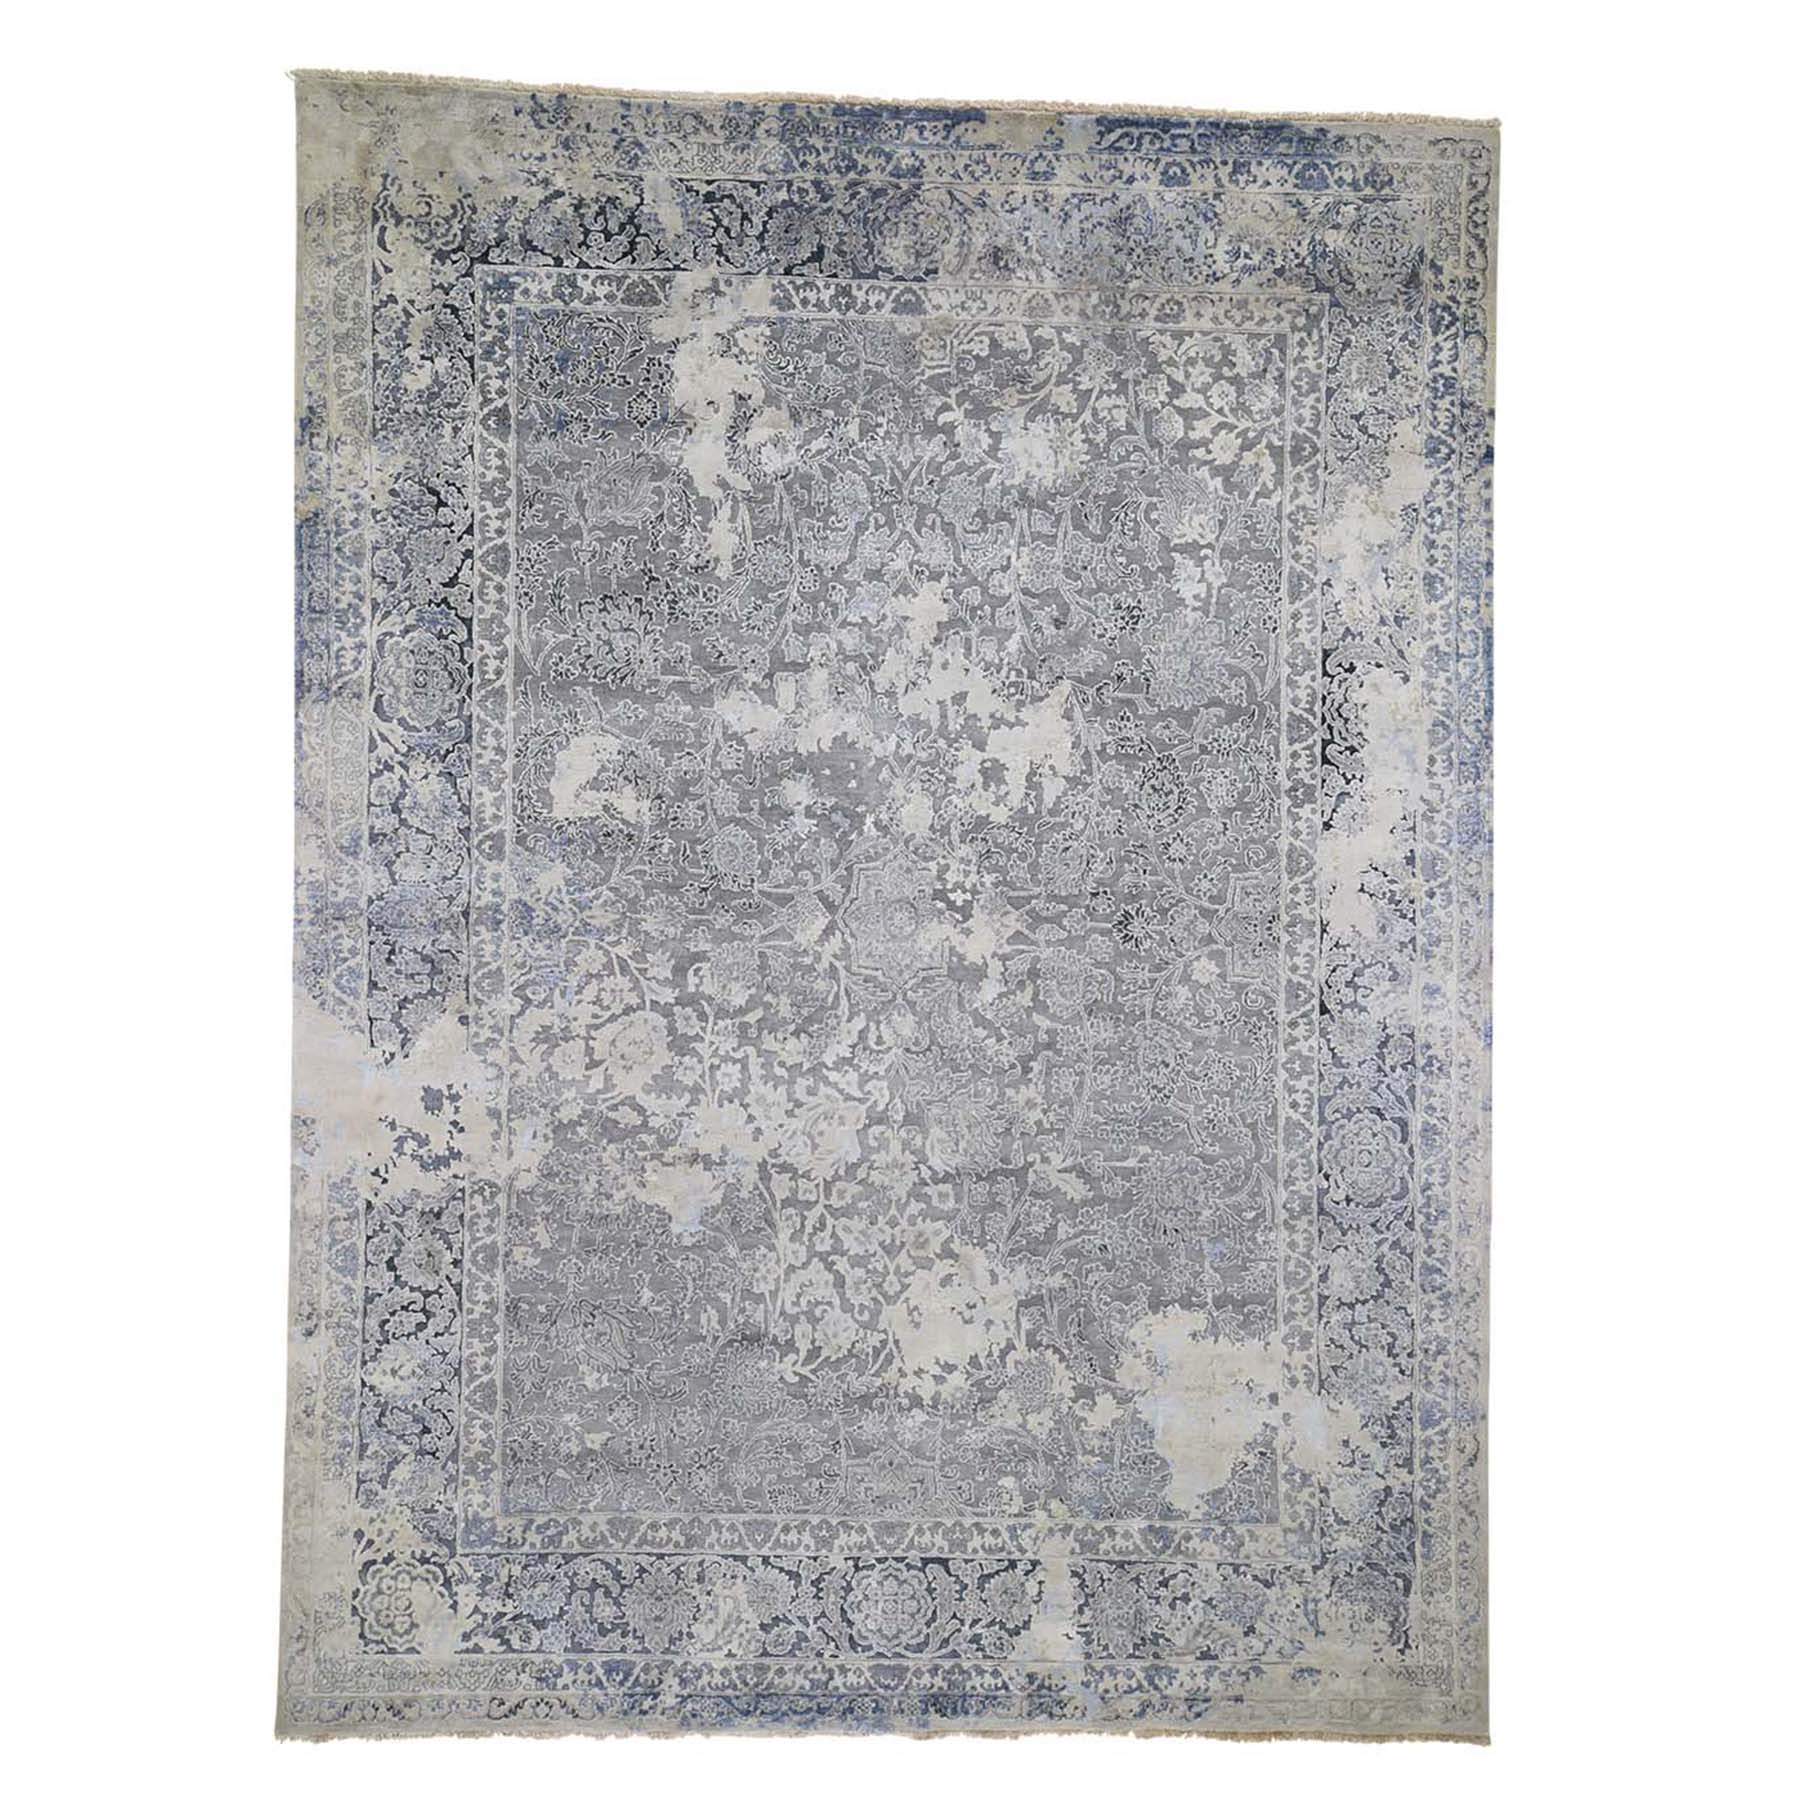 9'X12' Broken Persian Design With Pure Silk Hand-Knotted Oriental Rug moad6be6